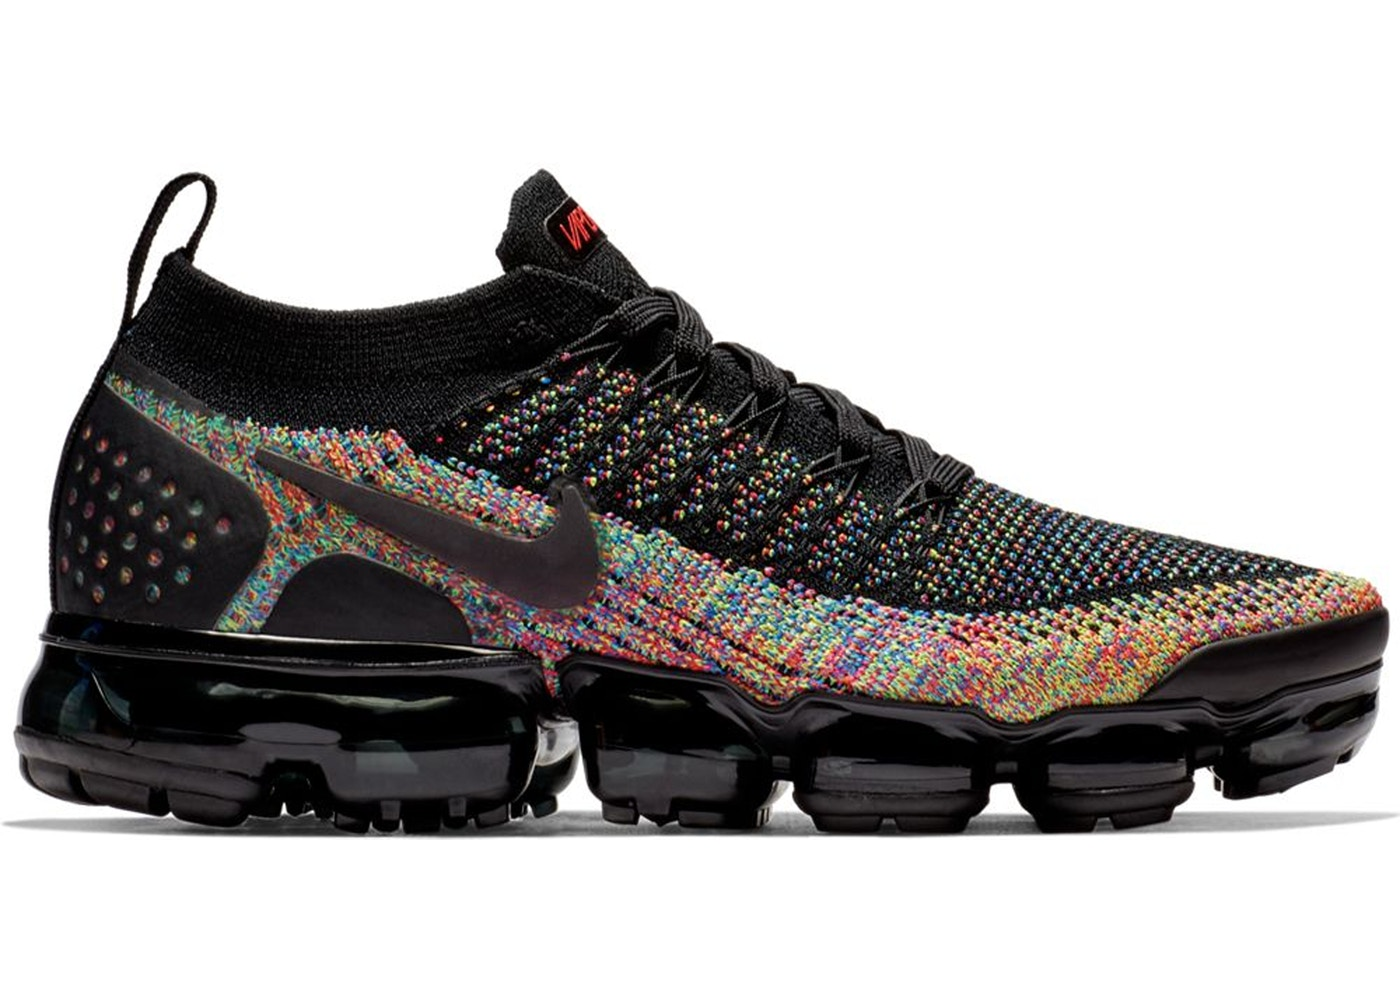 64ee62f48f3 Buy Nike Air Max VaporMax Shoes   Deadstock Sneakers